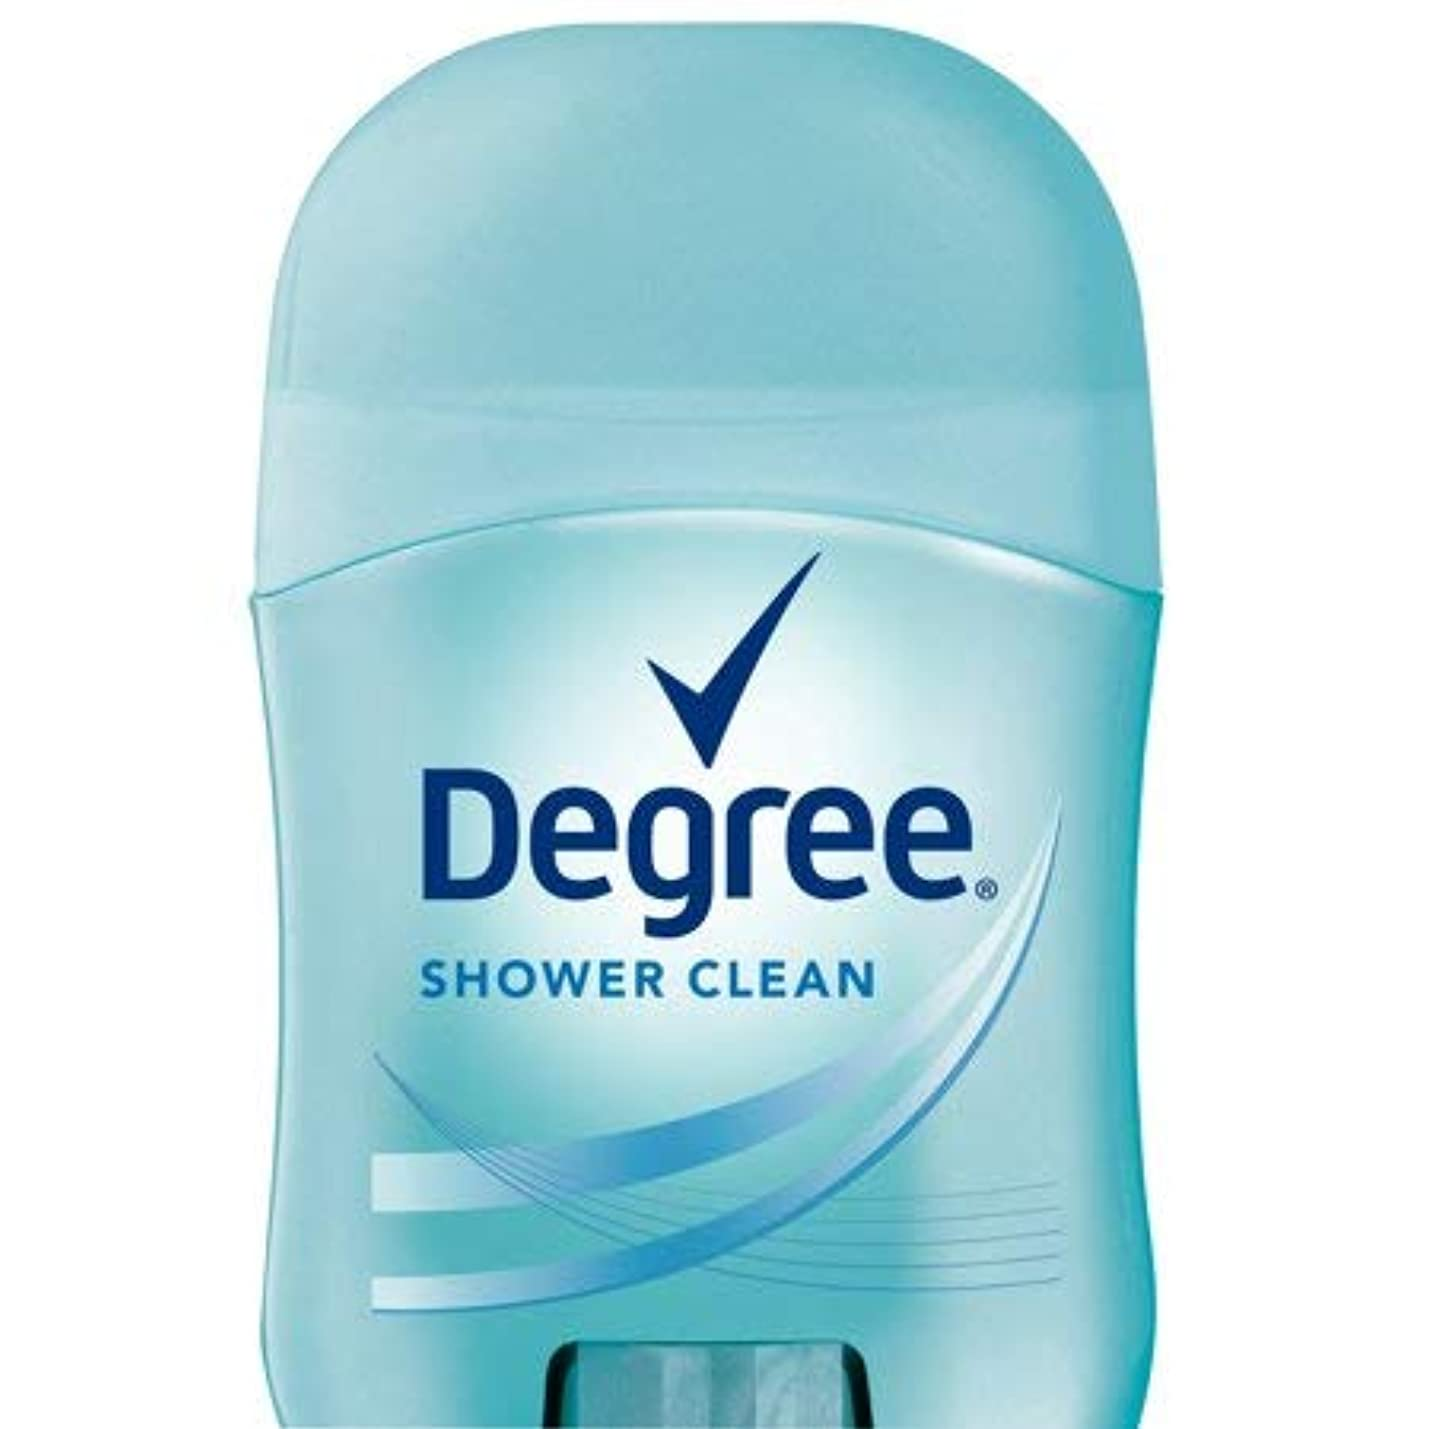 検出可能気絶させるシェアDegree Women Shower Clean Dry Protection Antiperspirant Deodorant, 0.5 oz (14g) [並行輸入品]